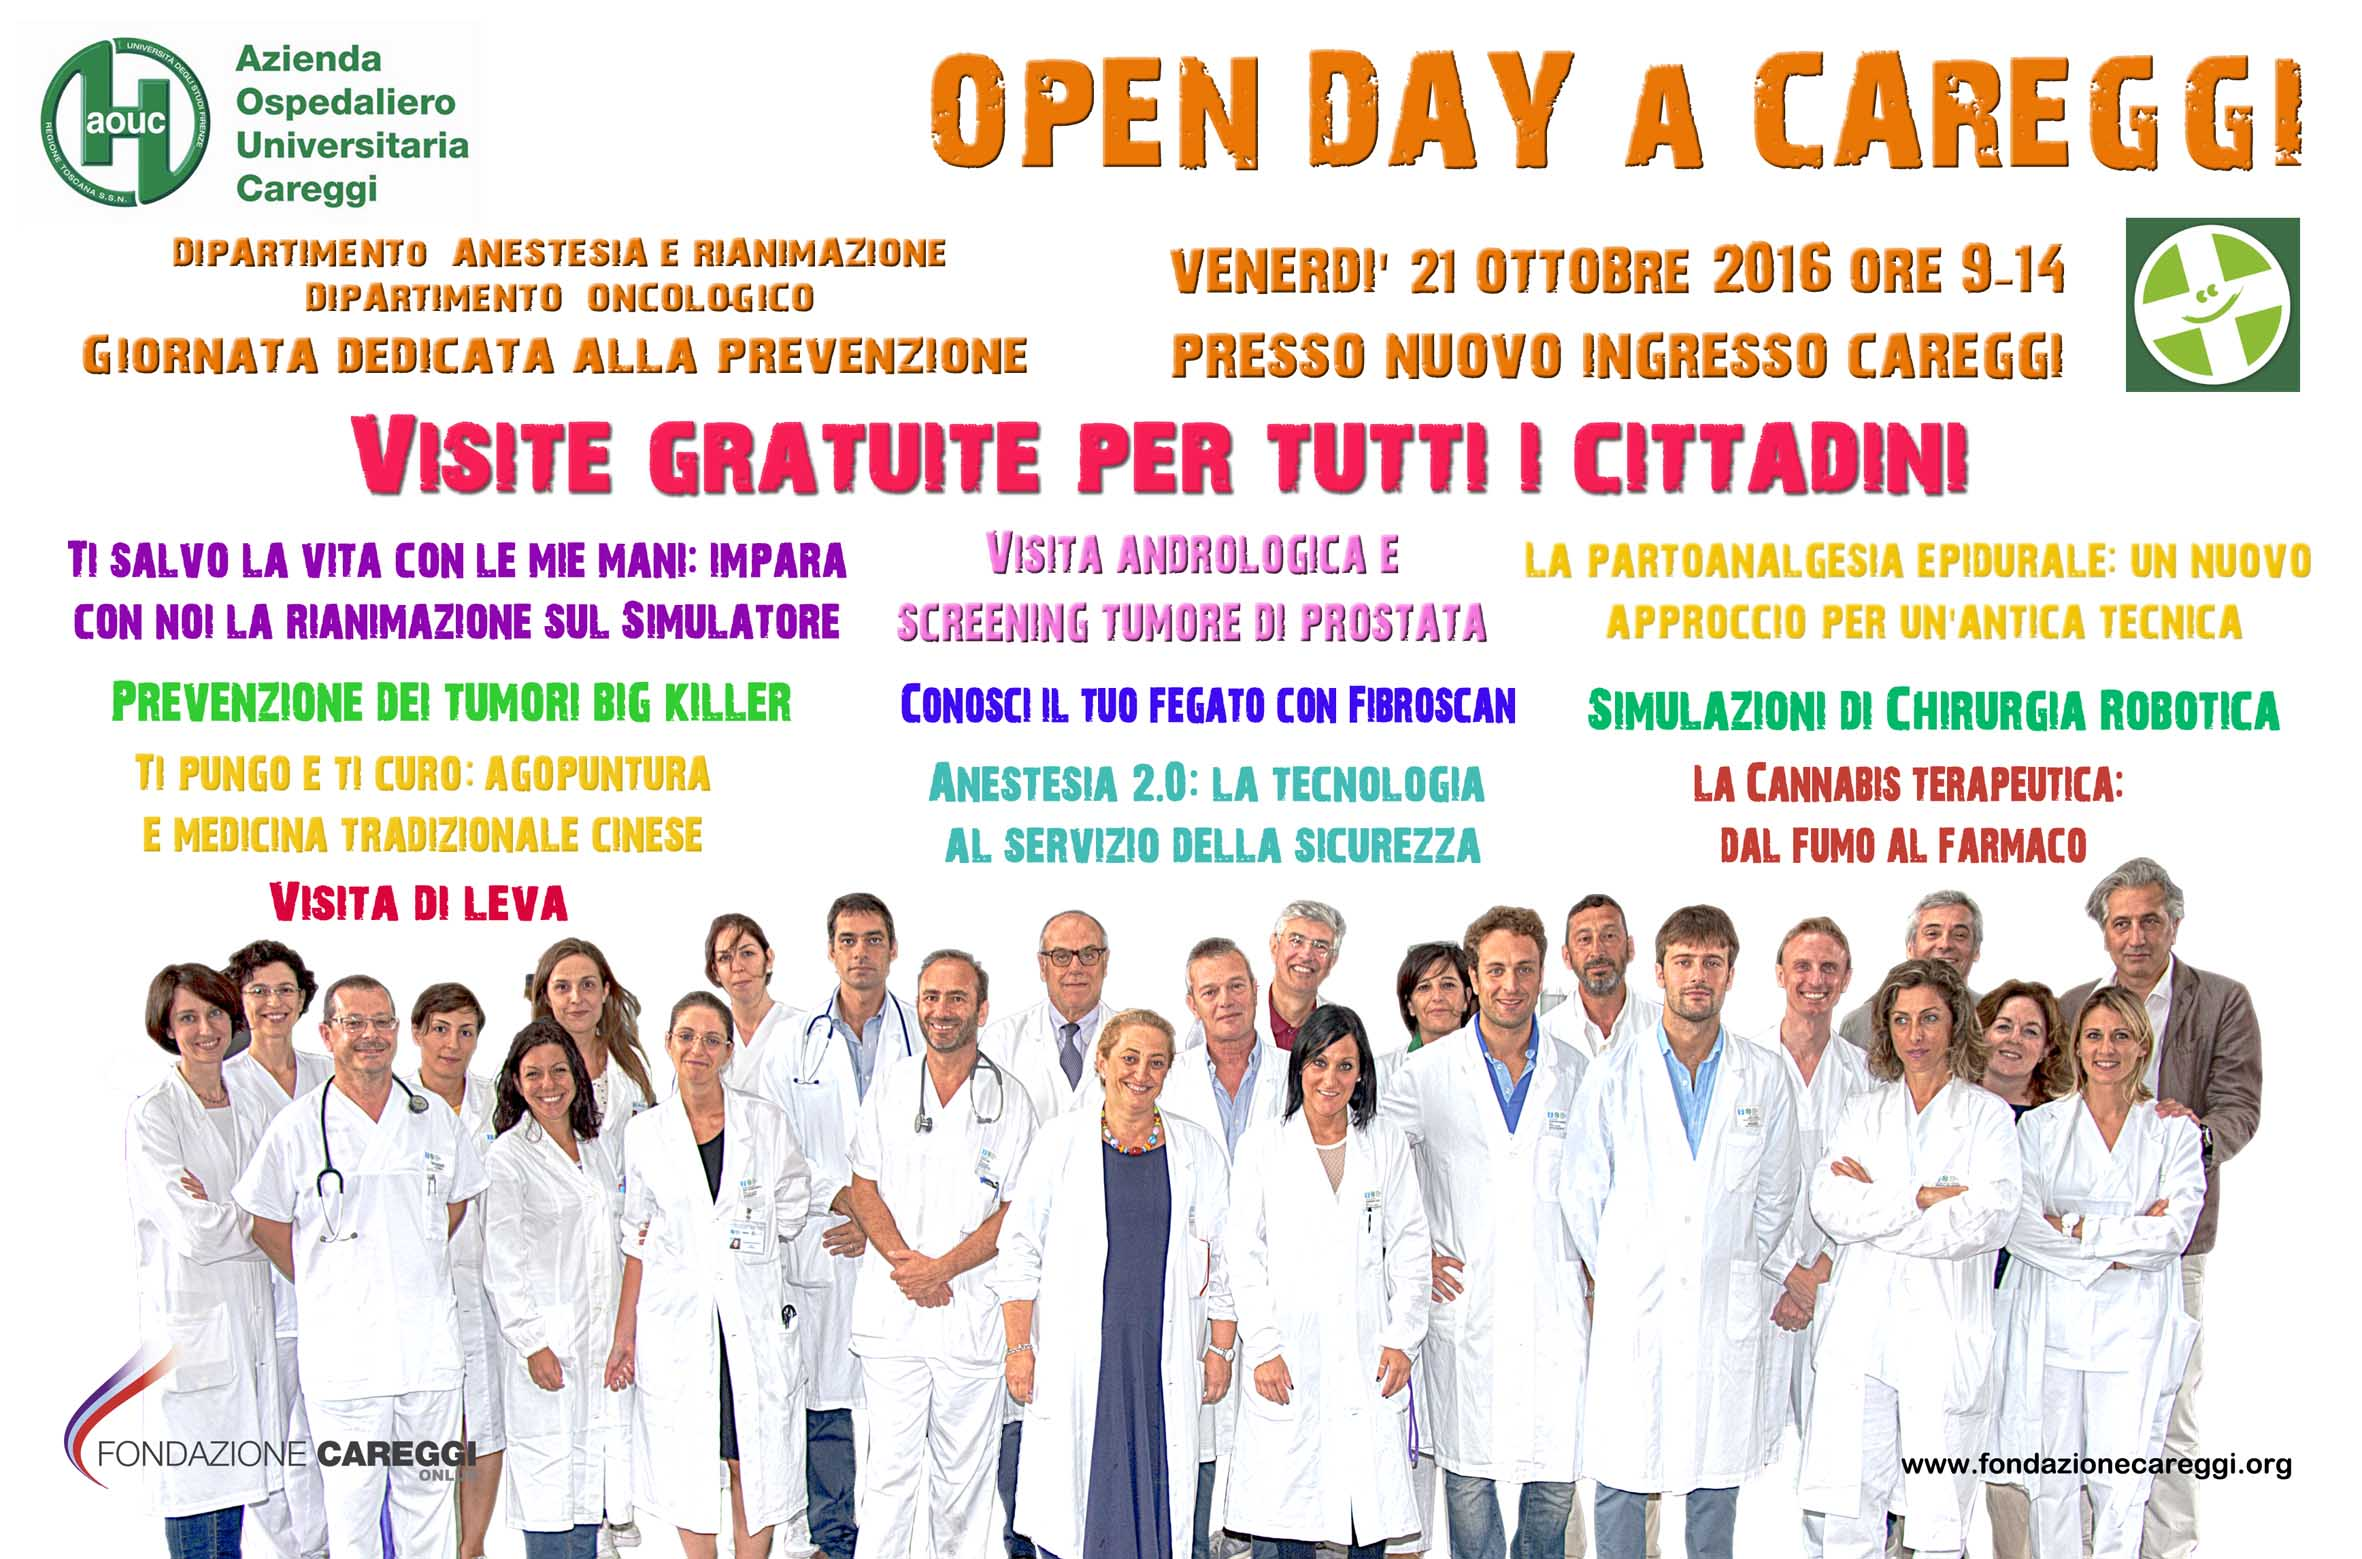 Openday AnestRian Oncologia